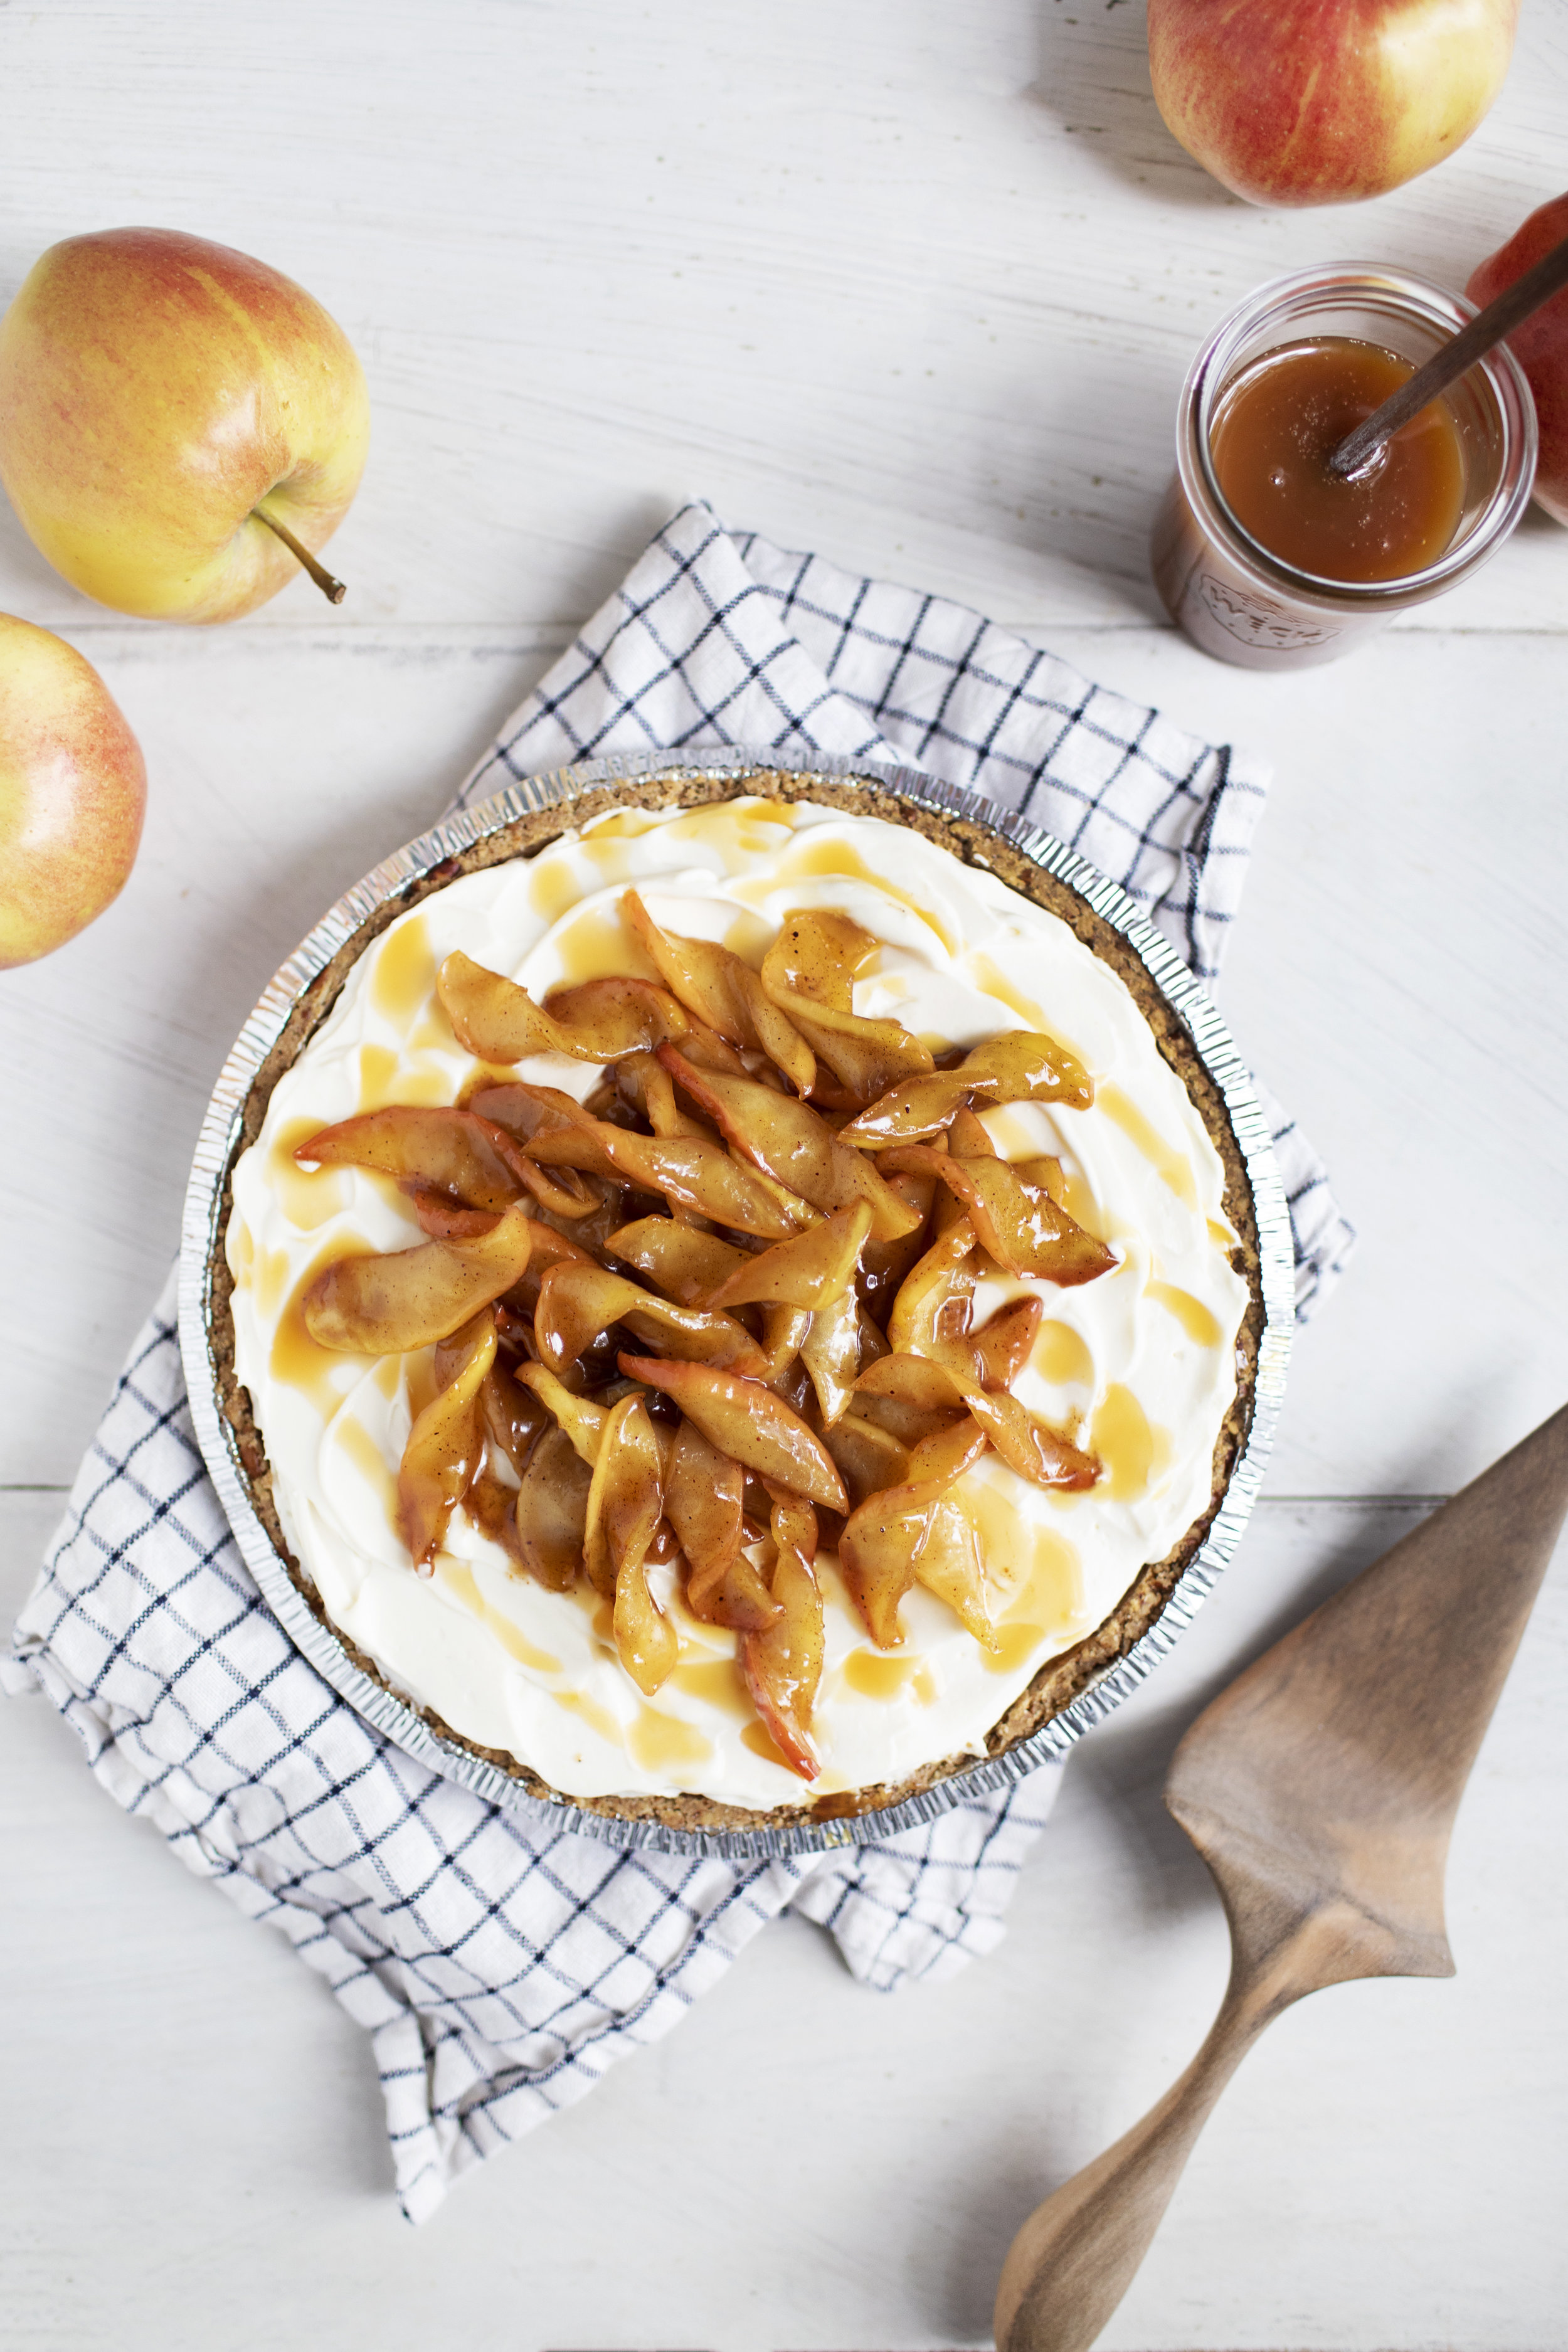 no-bake apple pie iii.jpg